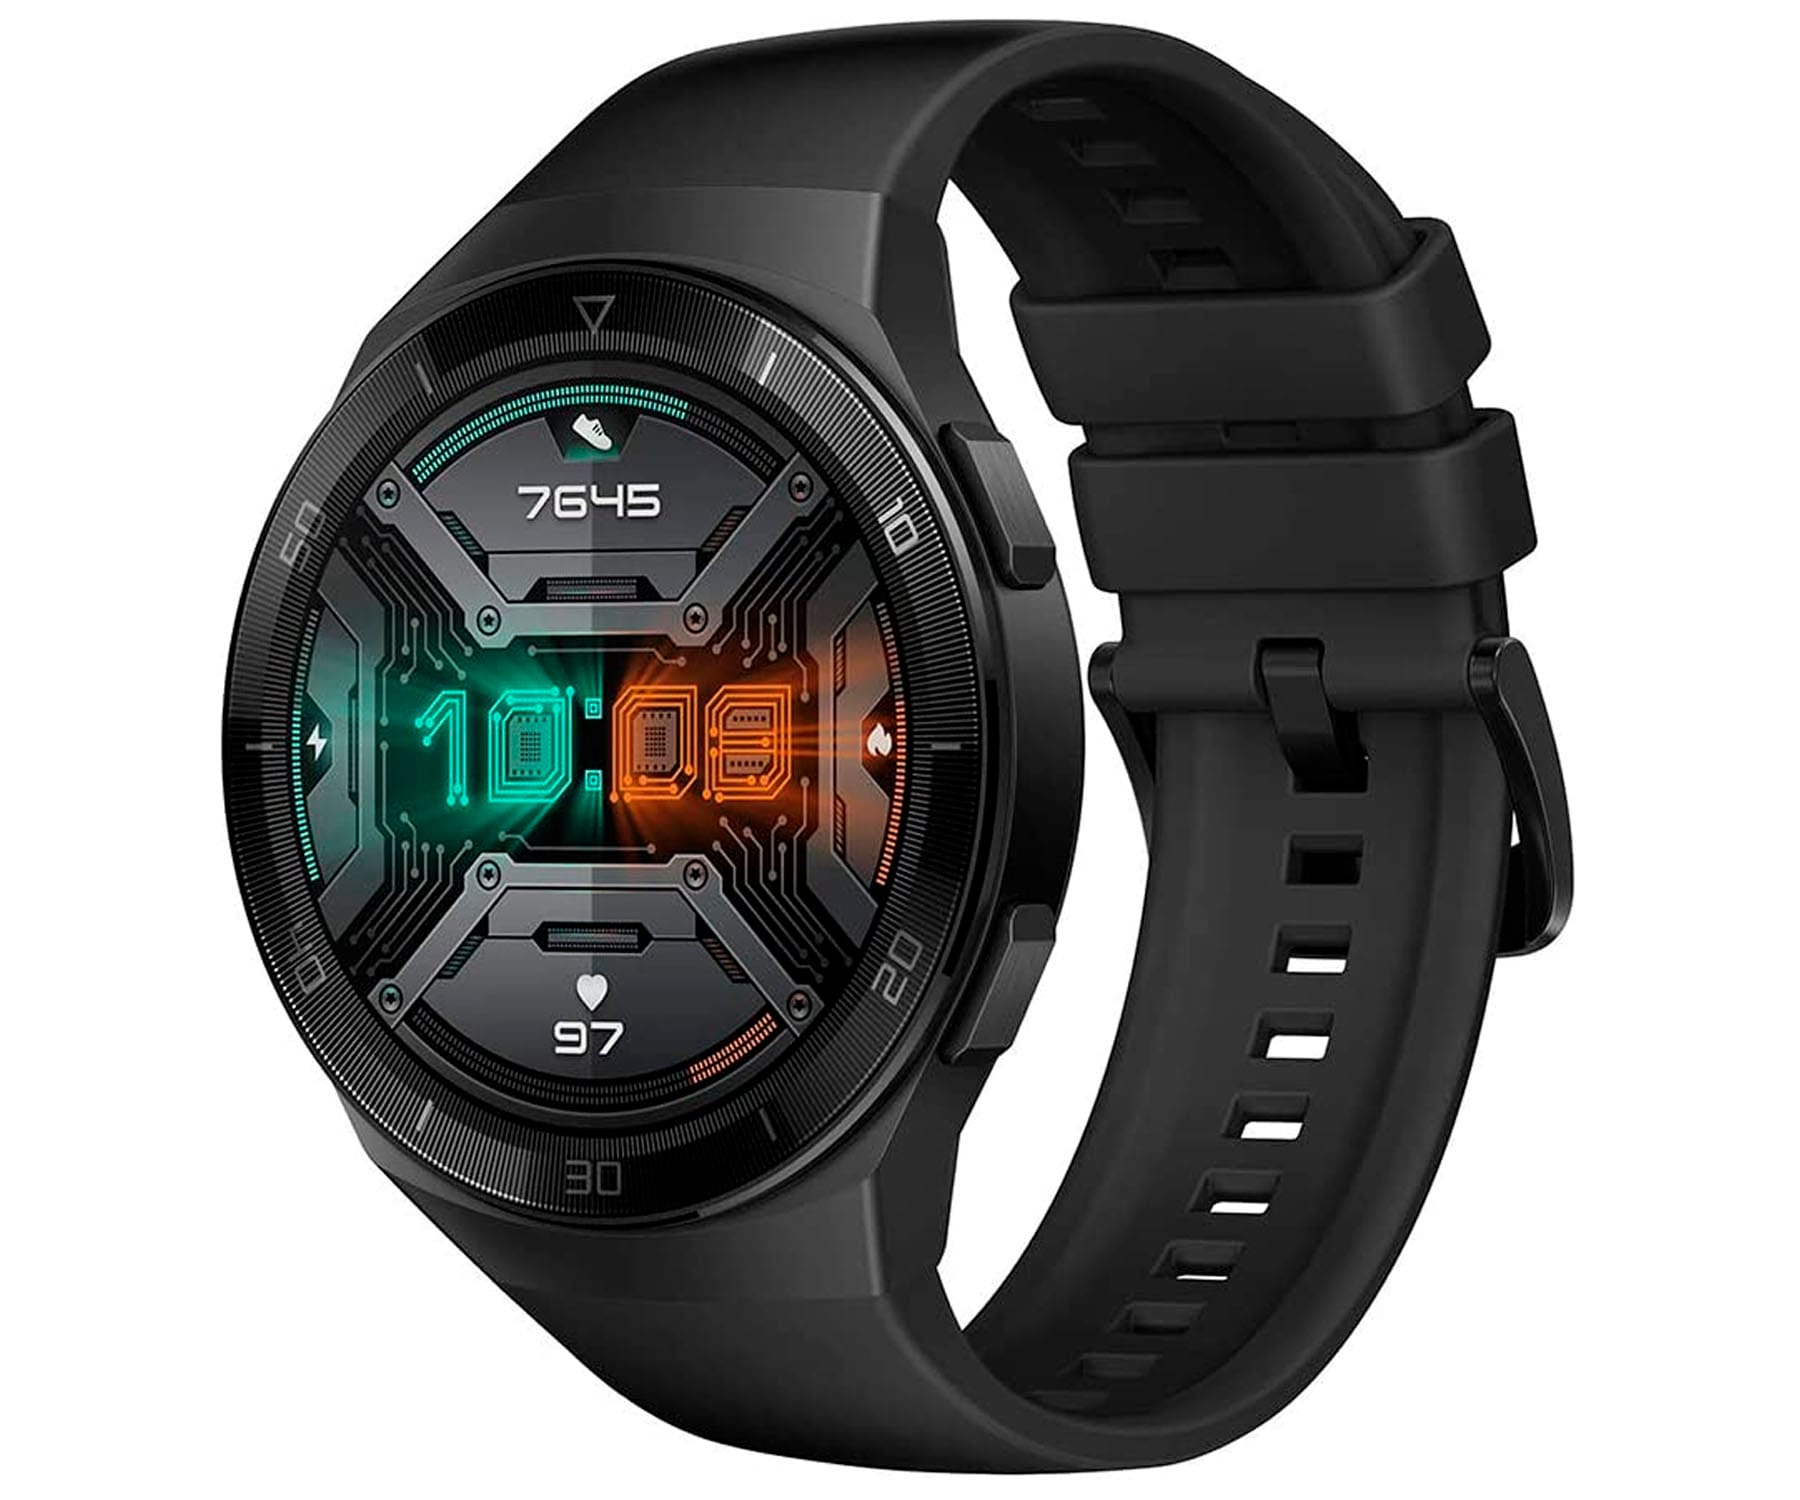 HUAWEI WATCH GT 2e SPORT NEGRO SMARTWATCH TÁCTIL AMOLED 1.39'' GPS 5ATM BLUETOOTH